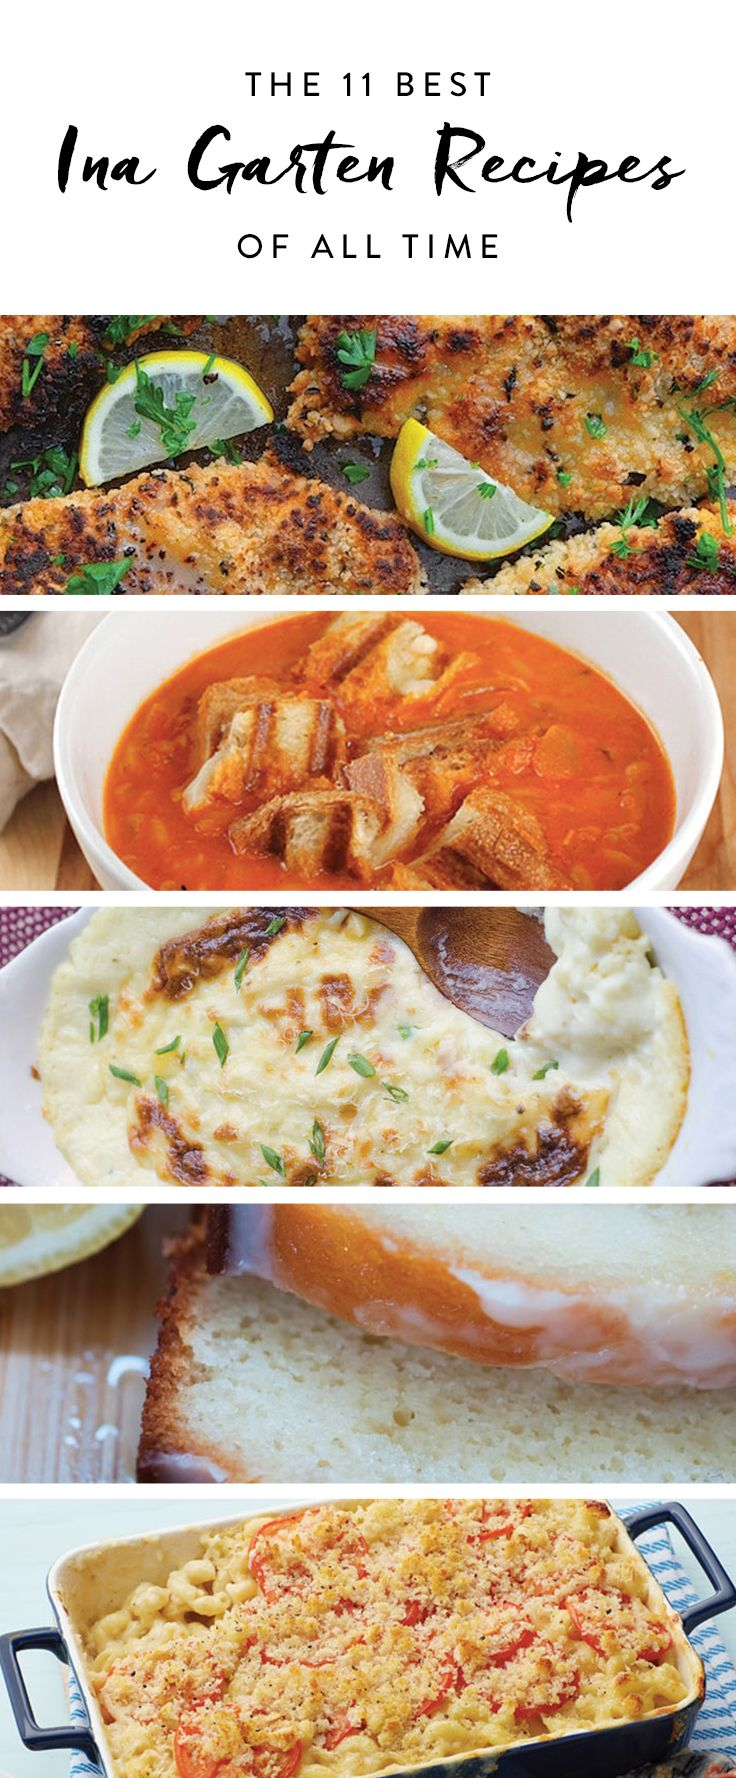 These are Ina Garten's best recipes ever. Add these to your cooking repertoire now.